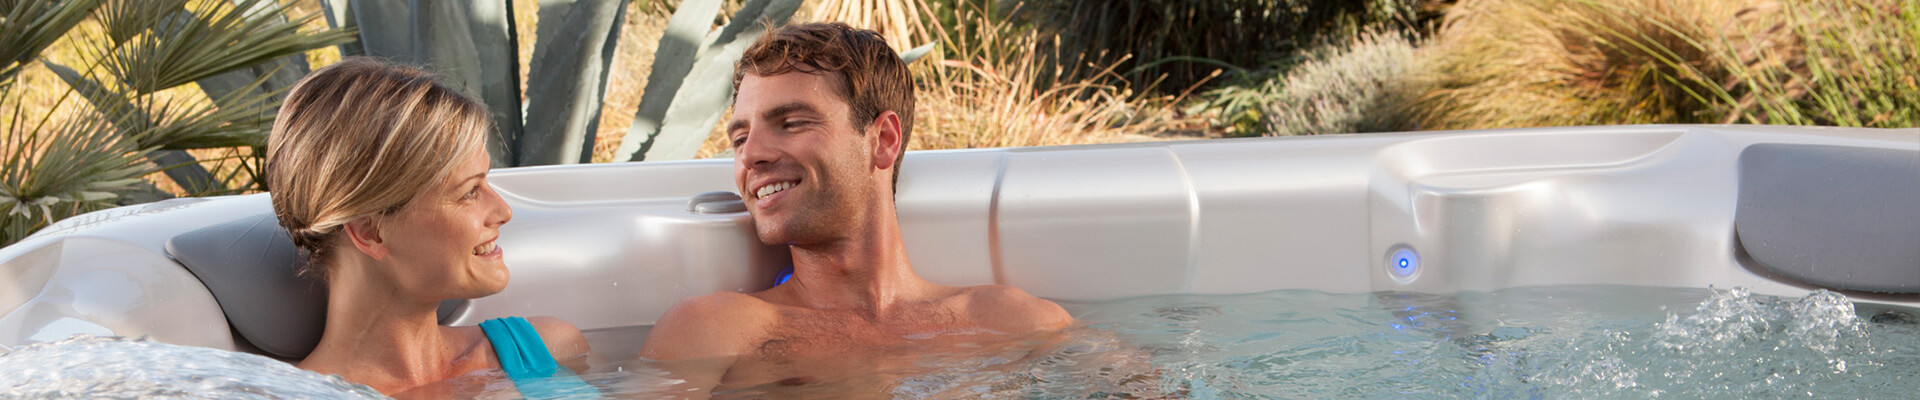 What Hot Tub Ownership Can Do For You – Hot Tubs Woodbury, Portable Spas Plymouth